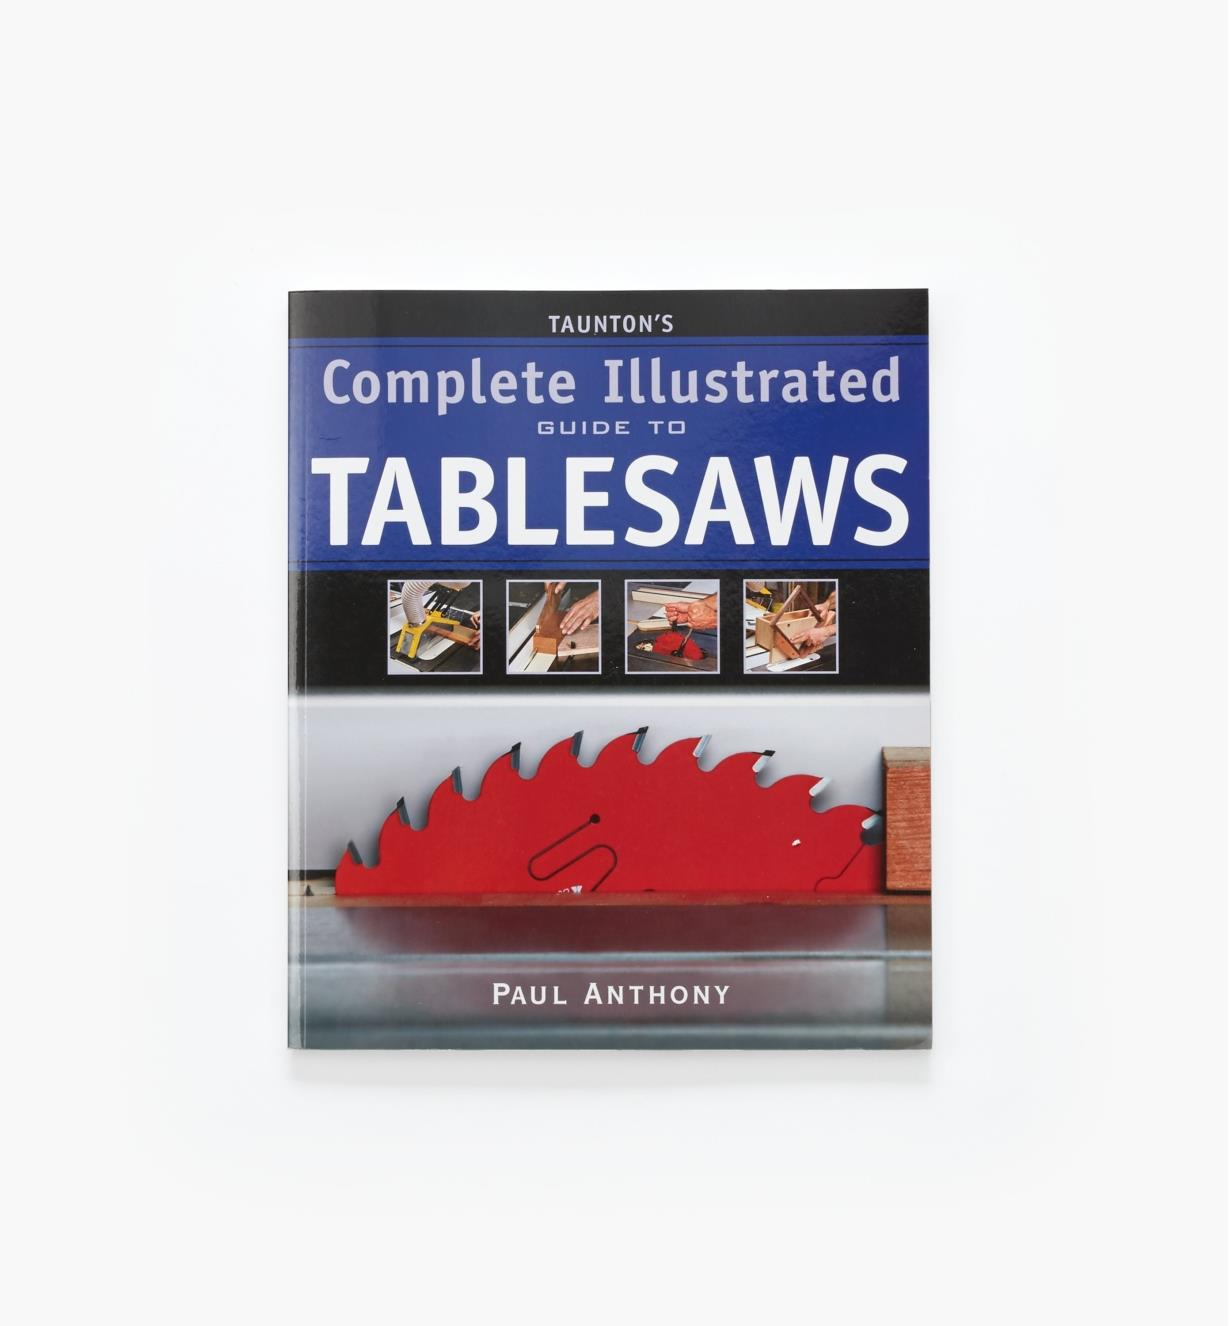 73L0275 - Complete Illustrated Guide to Tablesaws